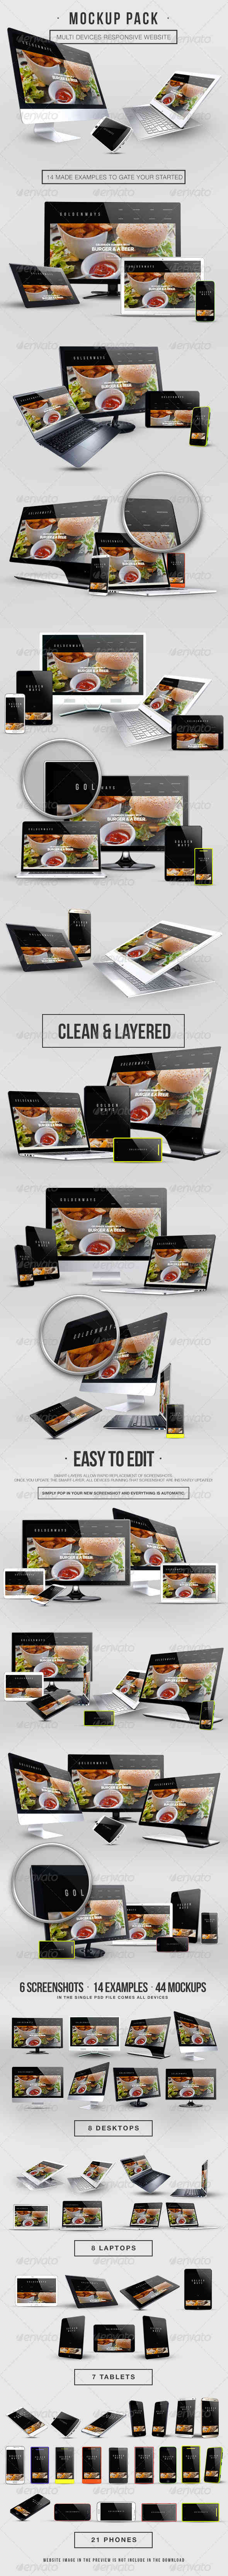 Multi Devices Responsive Website Mockup Pack